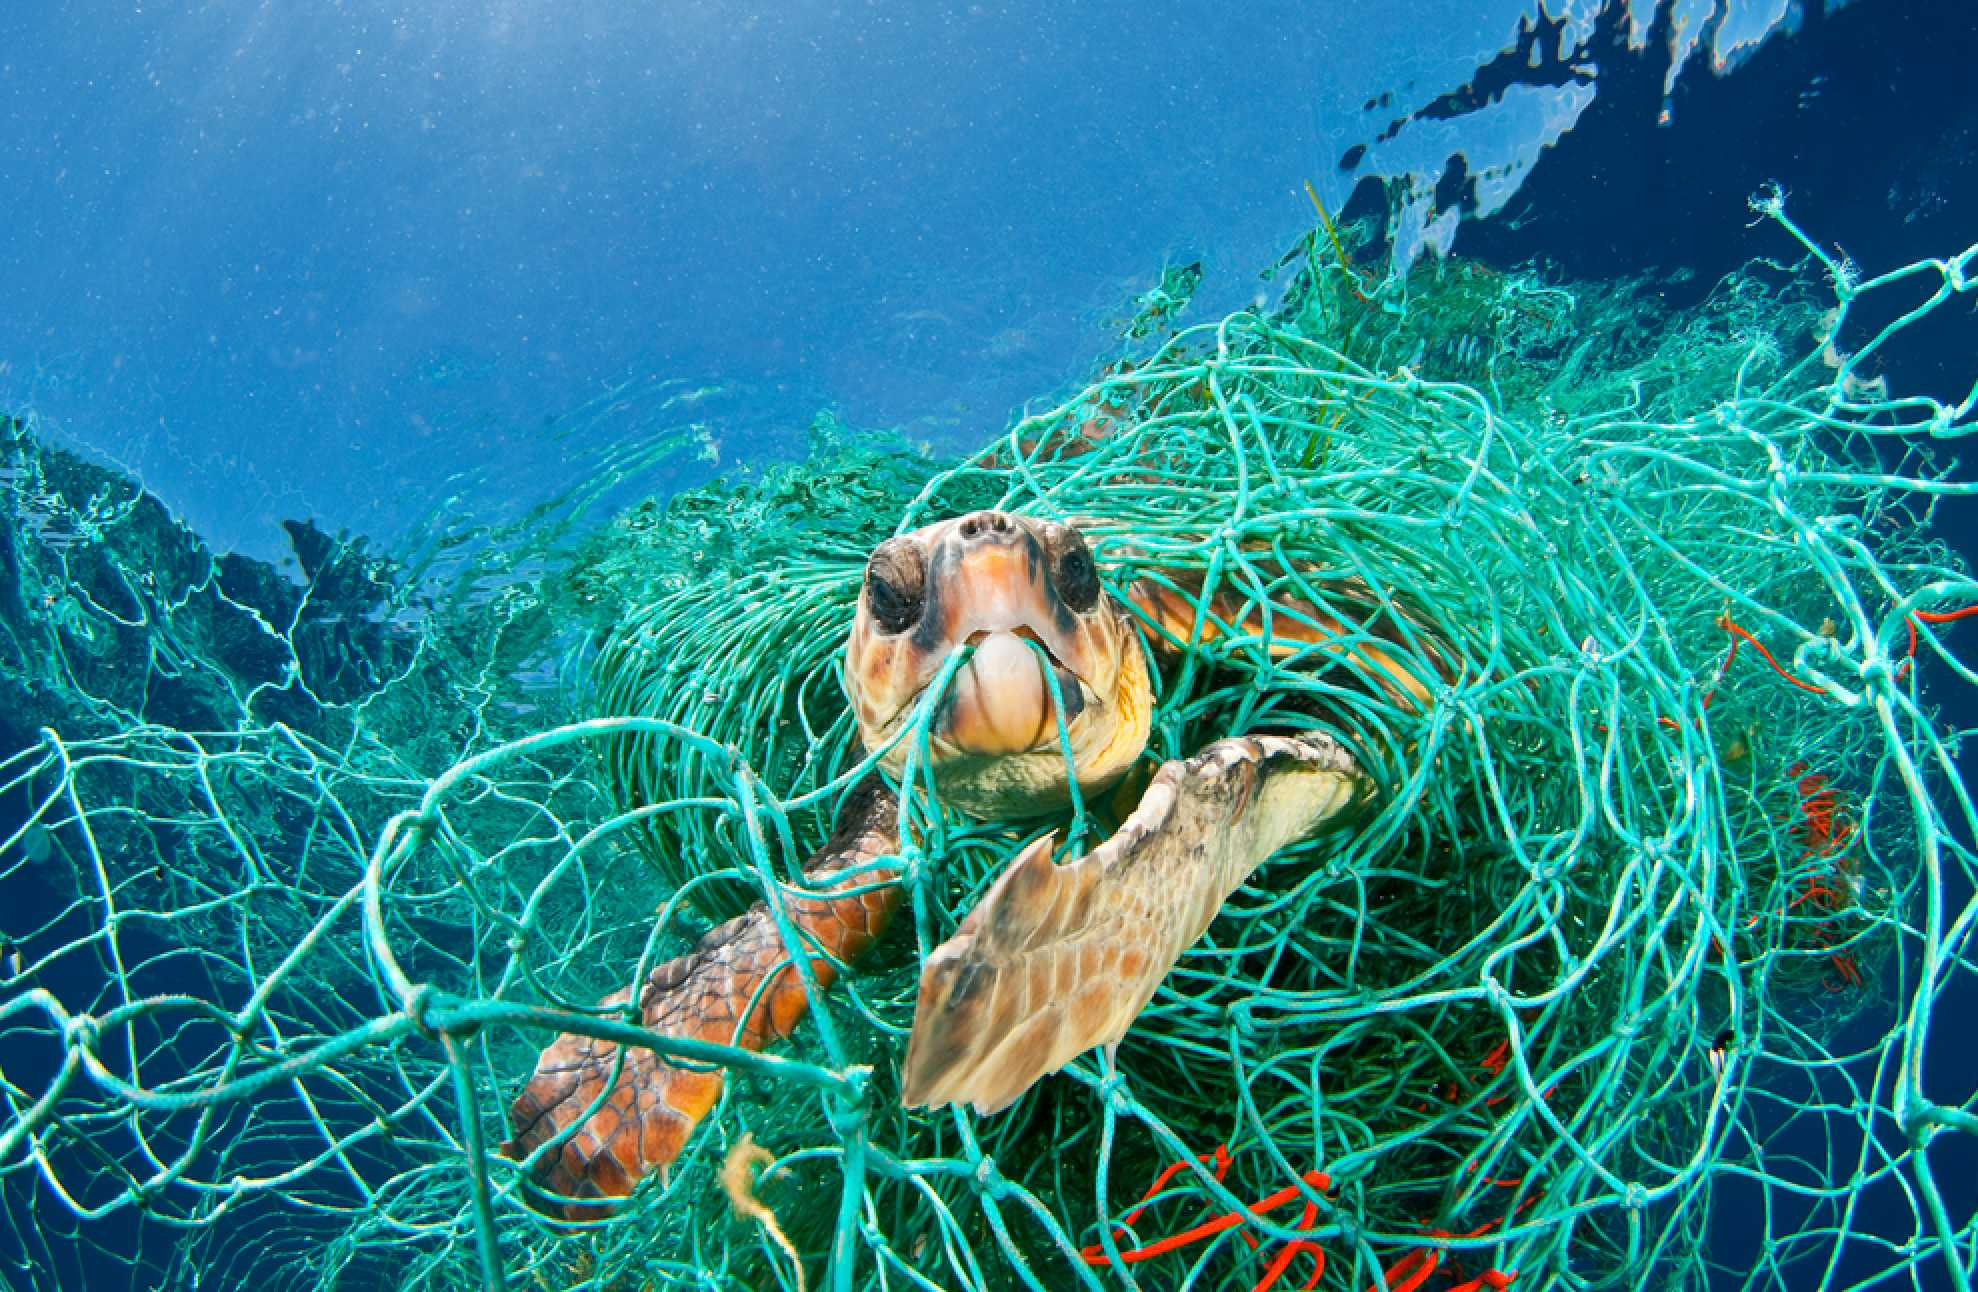 A turtle wrapped in discarded fishing net